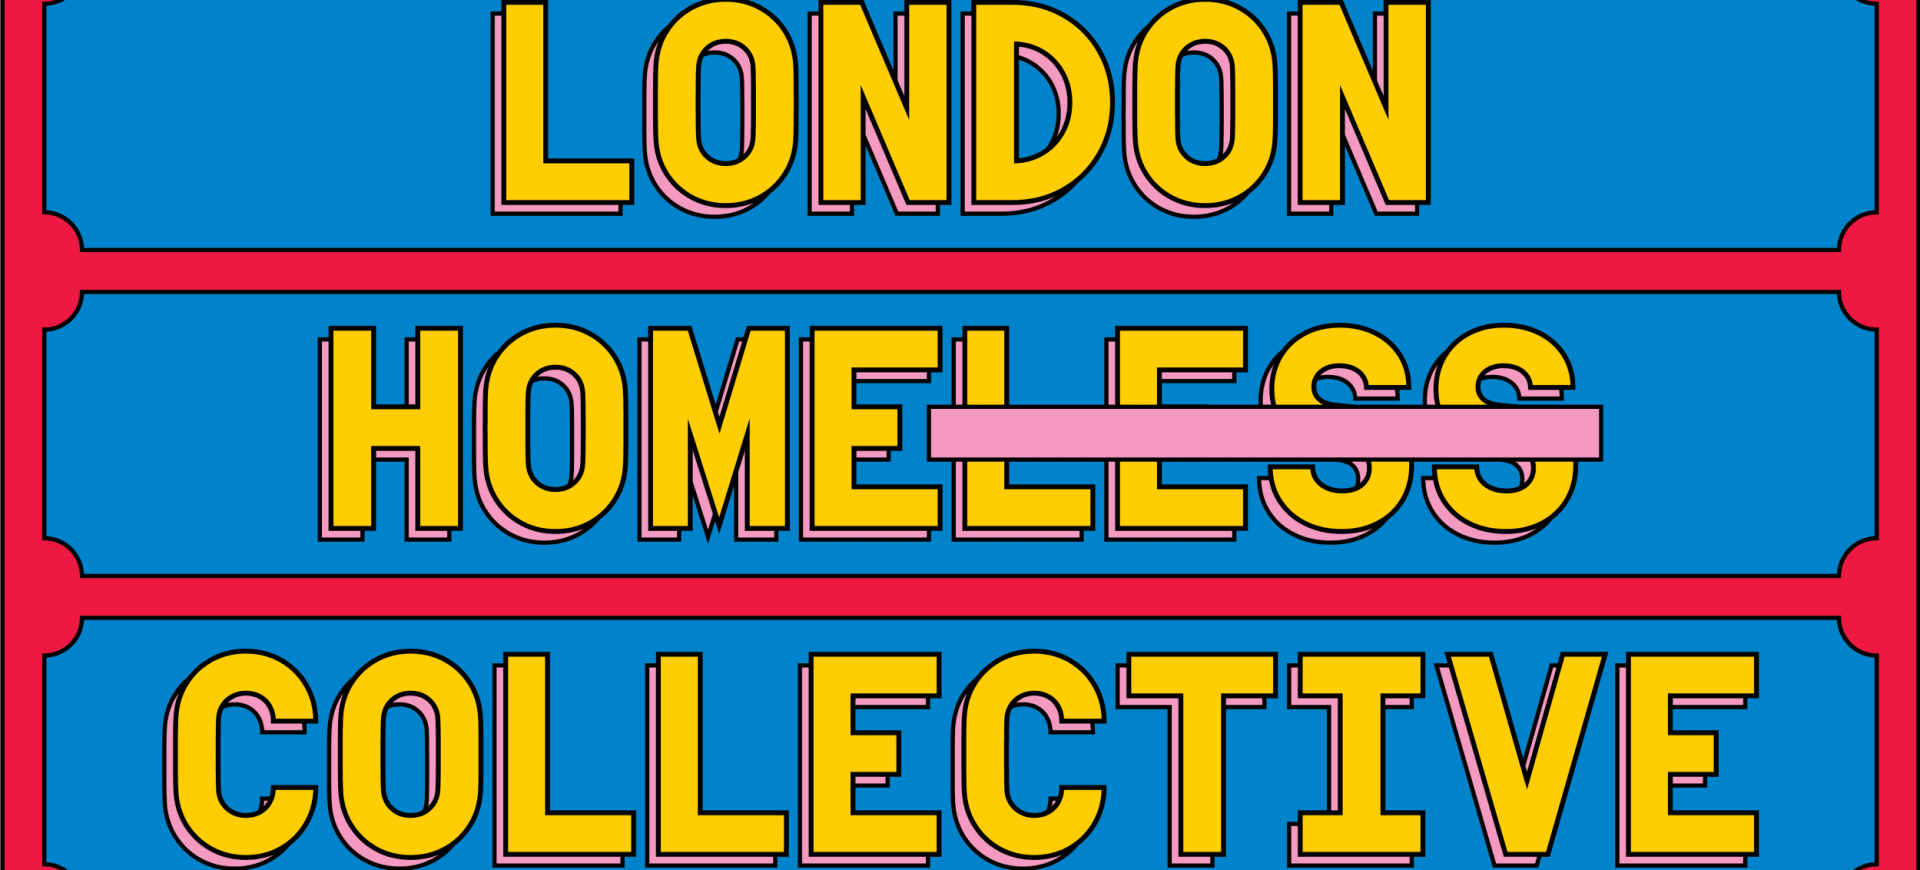 WLM joins Evening Standard's London Homeless Collective movement